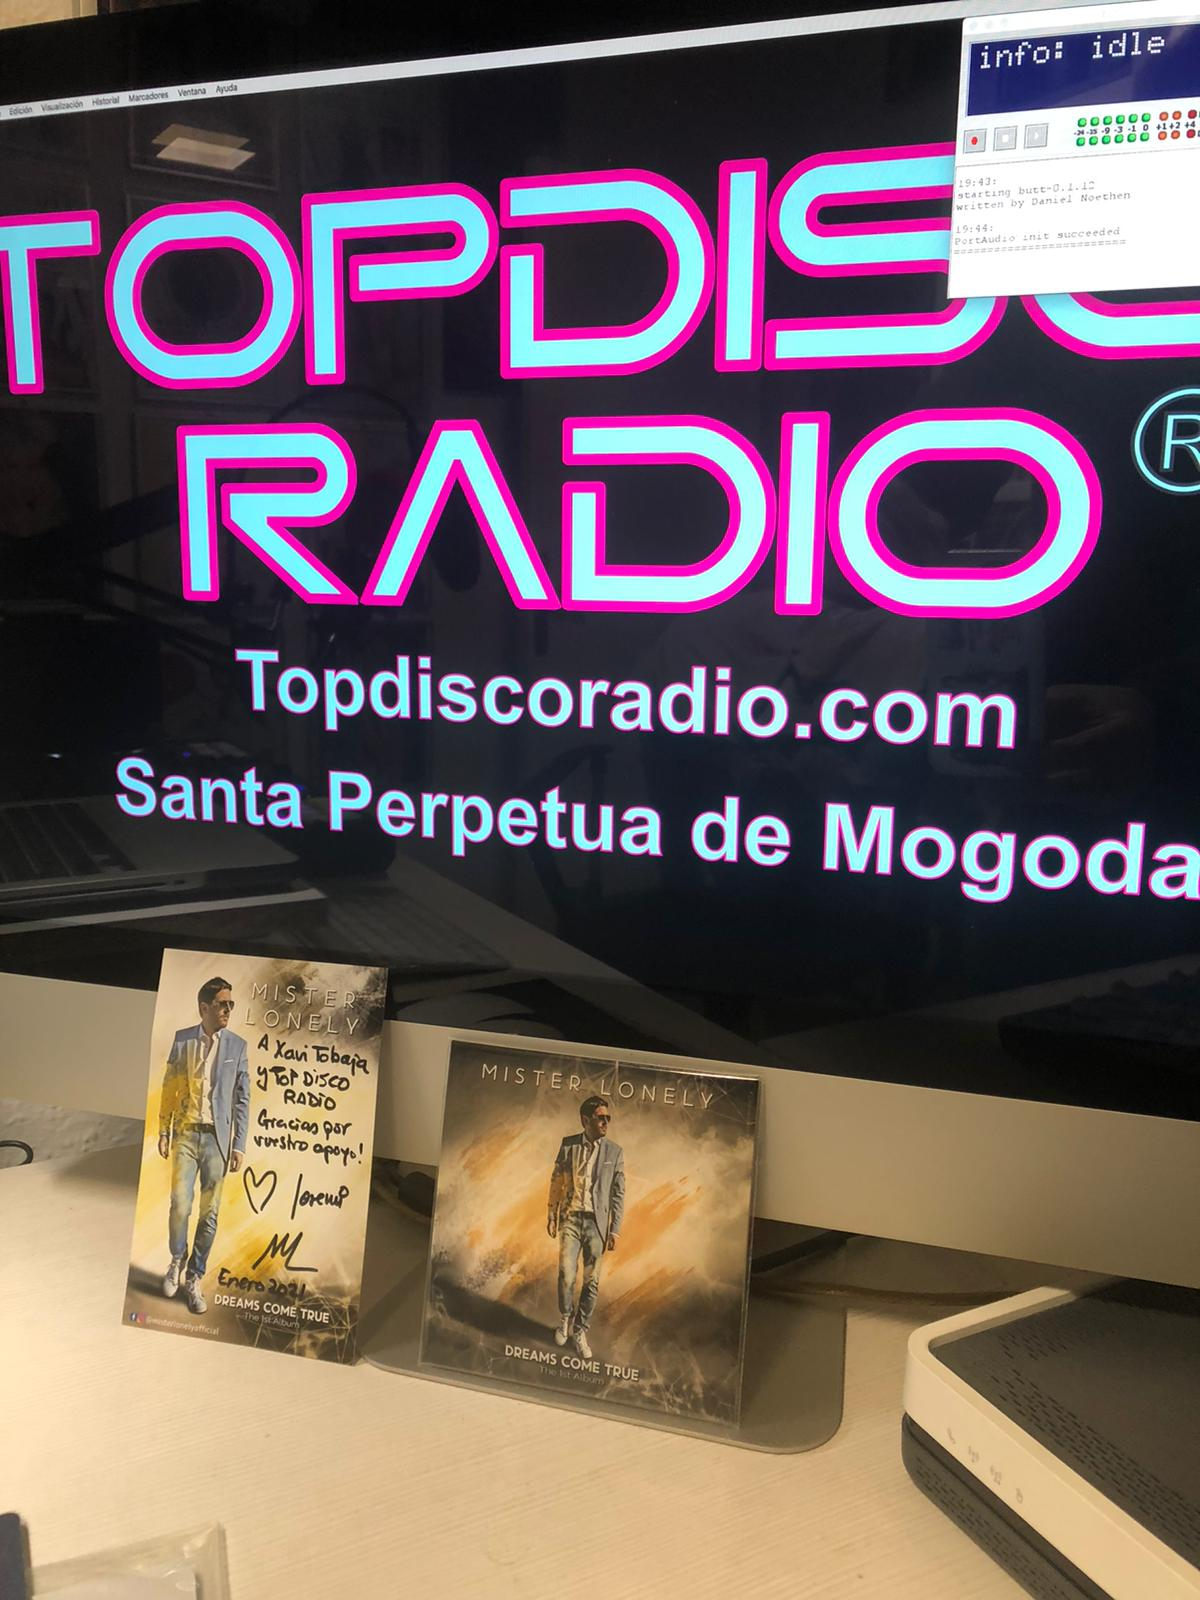 Mr Lonely The First Album en Topdisco Radio